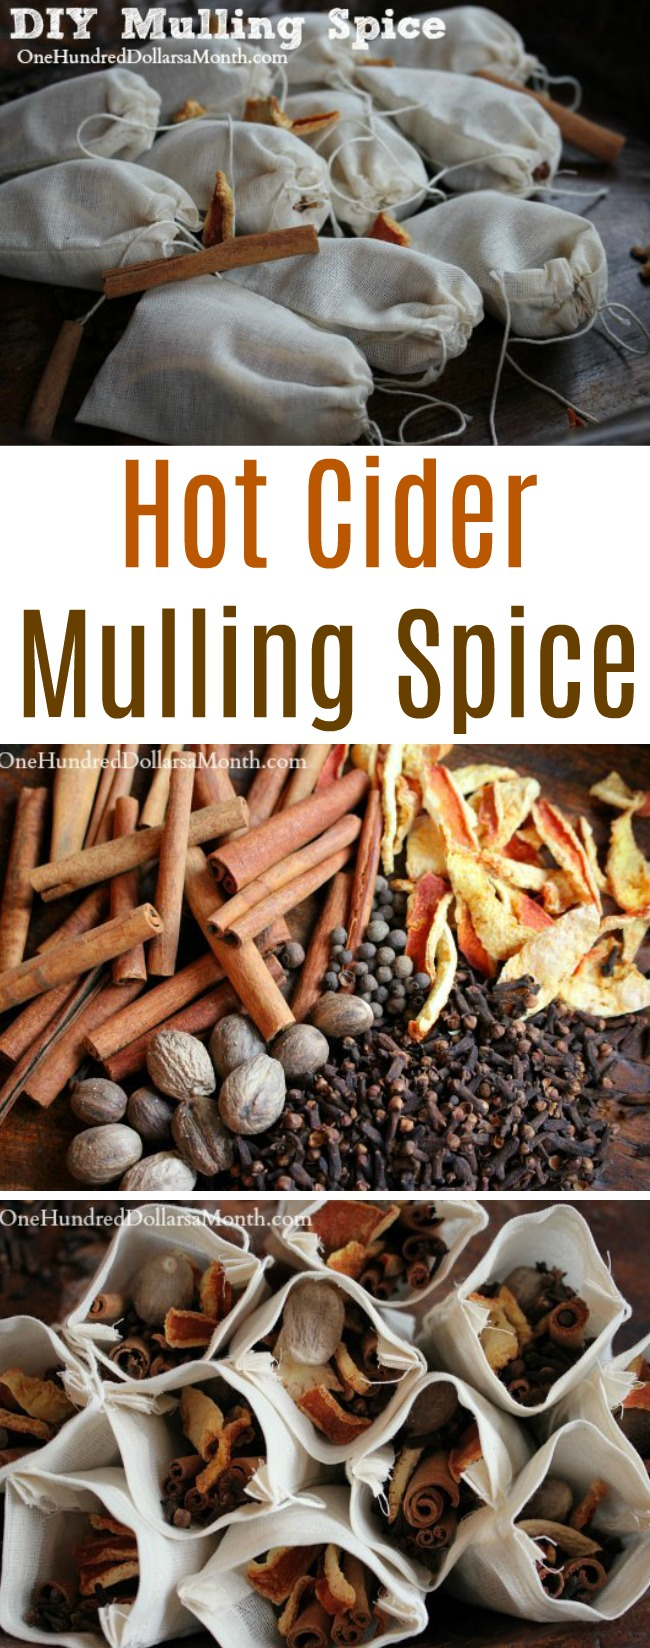 Holiday Gift Idea – Homemade Hot Cider Mulling Spice